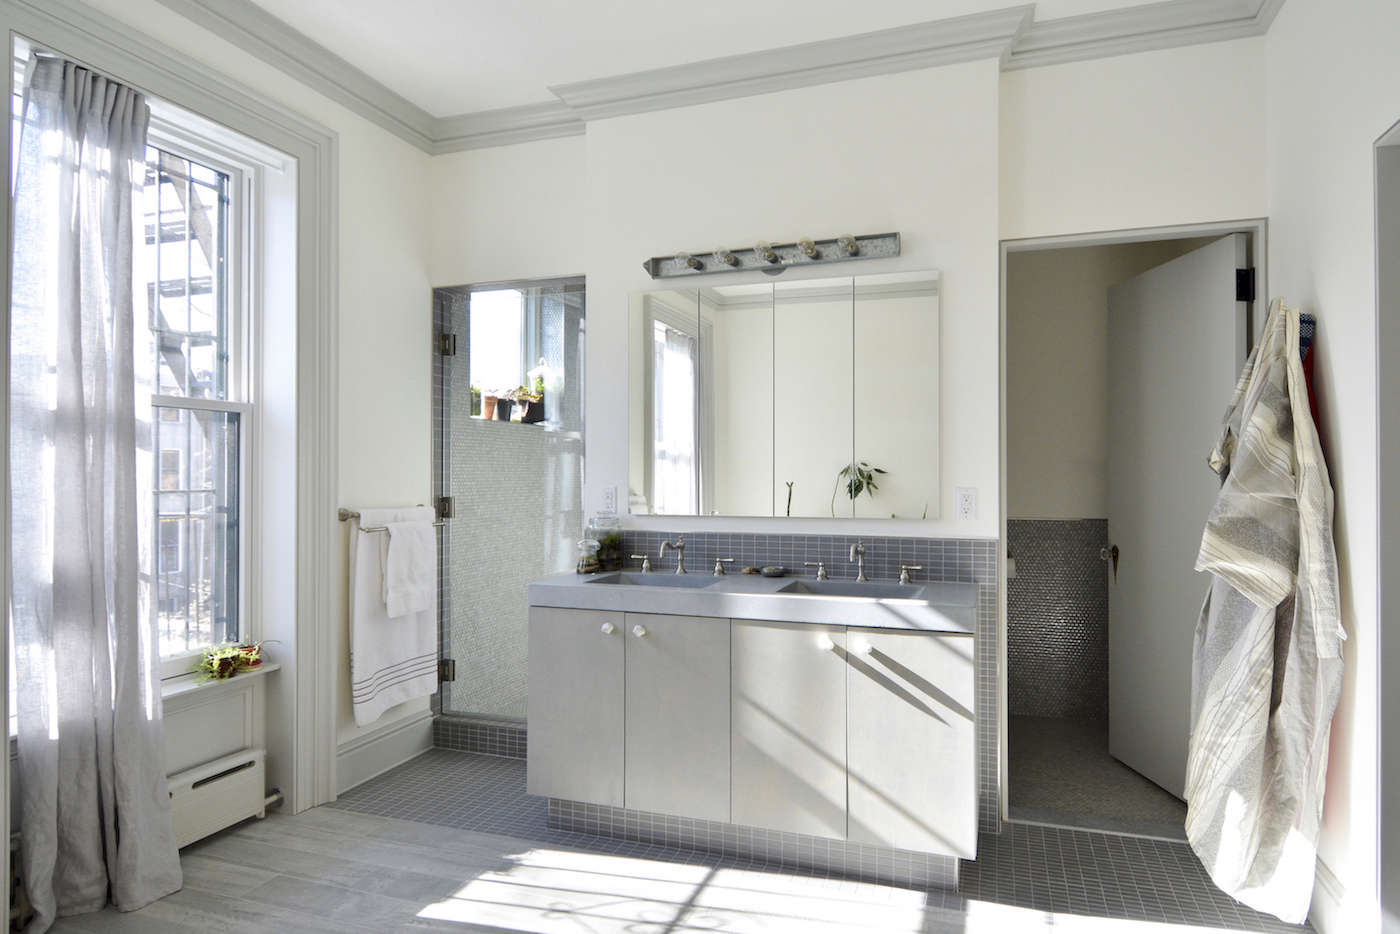 architects gregory merkel and catalina rojas townhouse master bath | remodelista 19